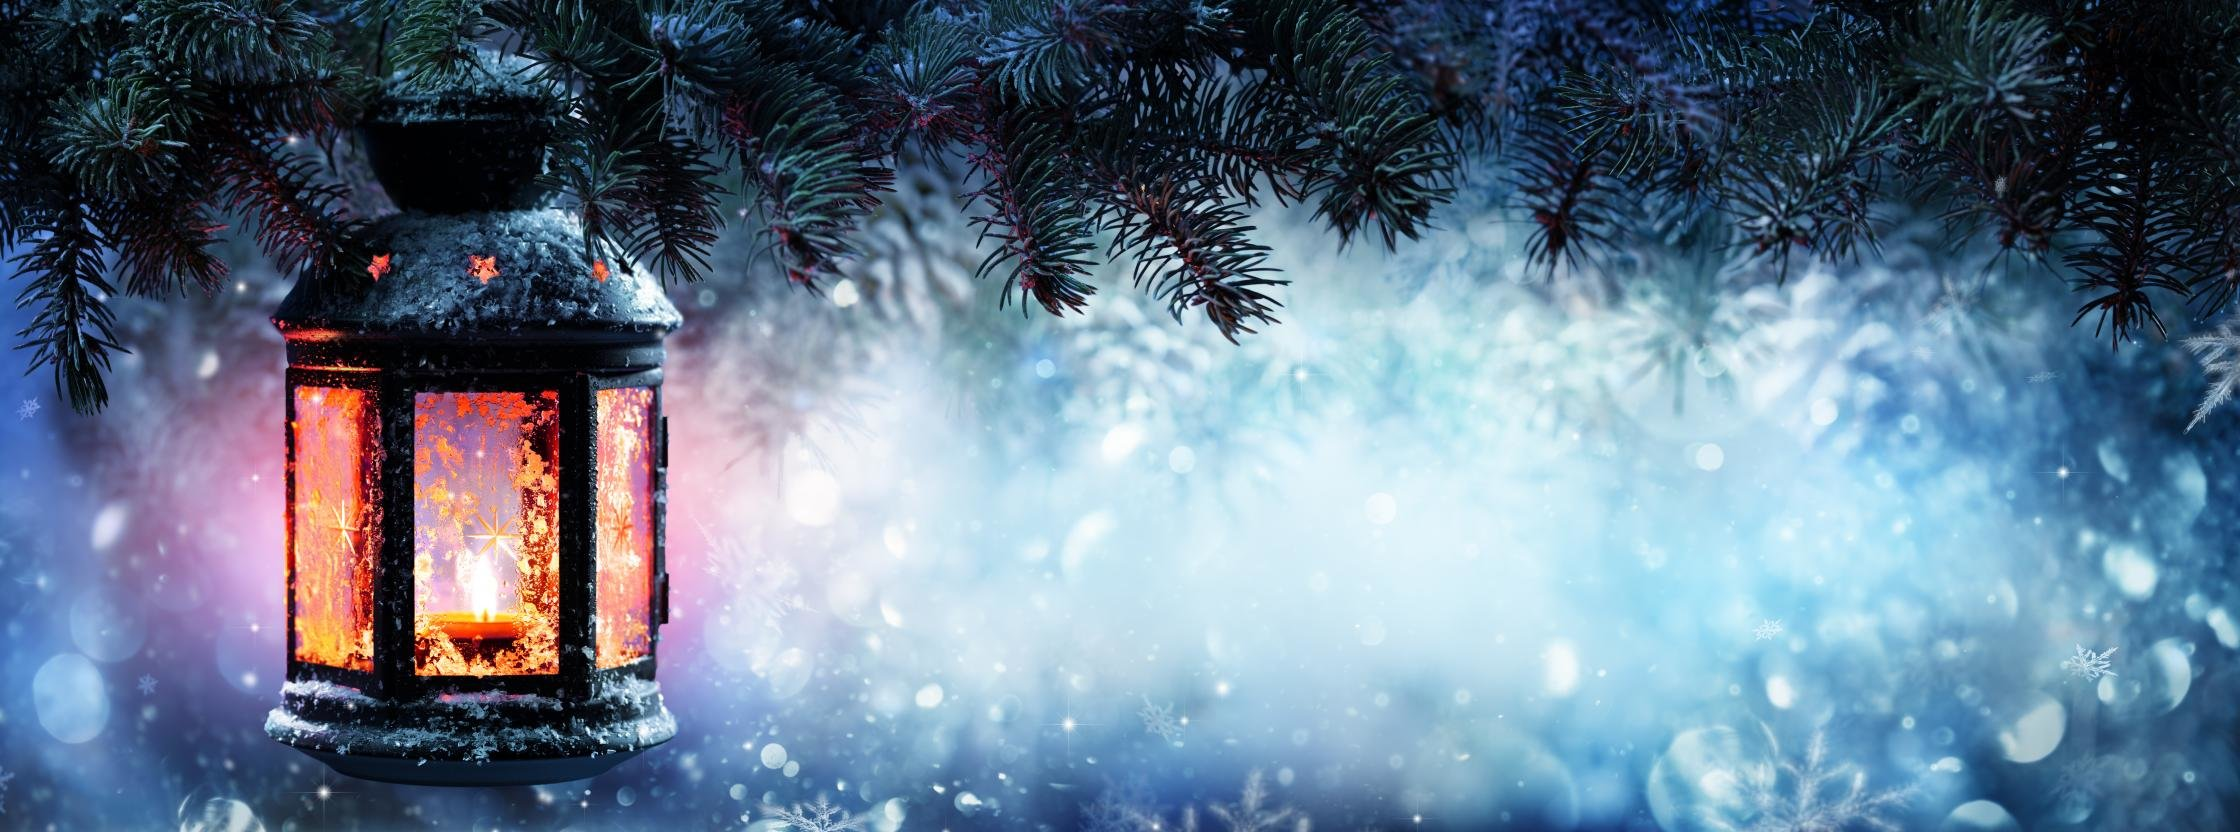 Dual Monitor Christmas Wallpapers Hd Backgrounds